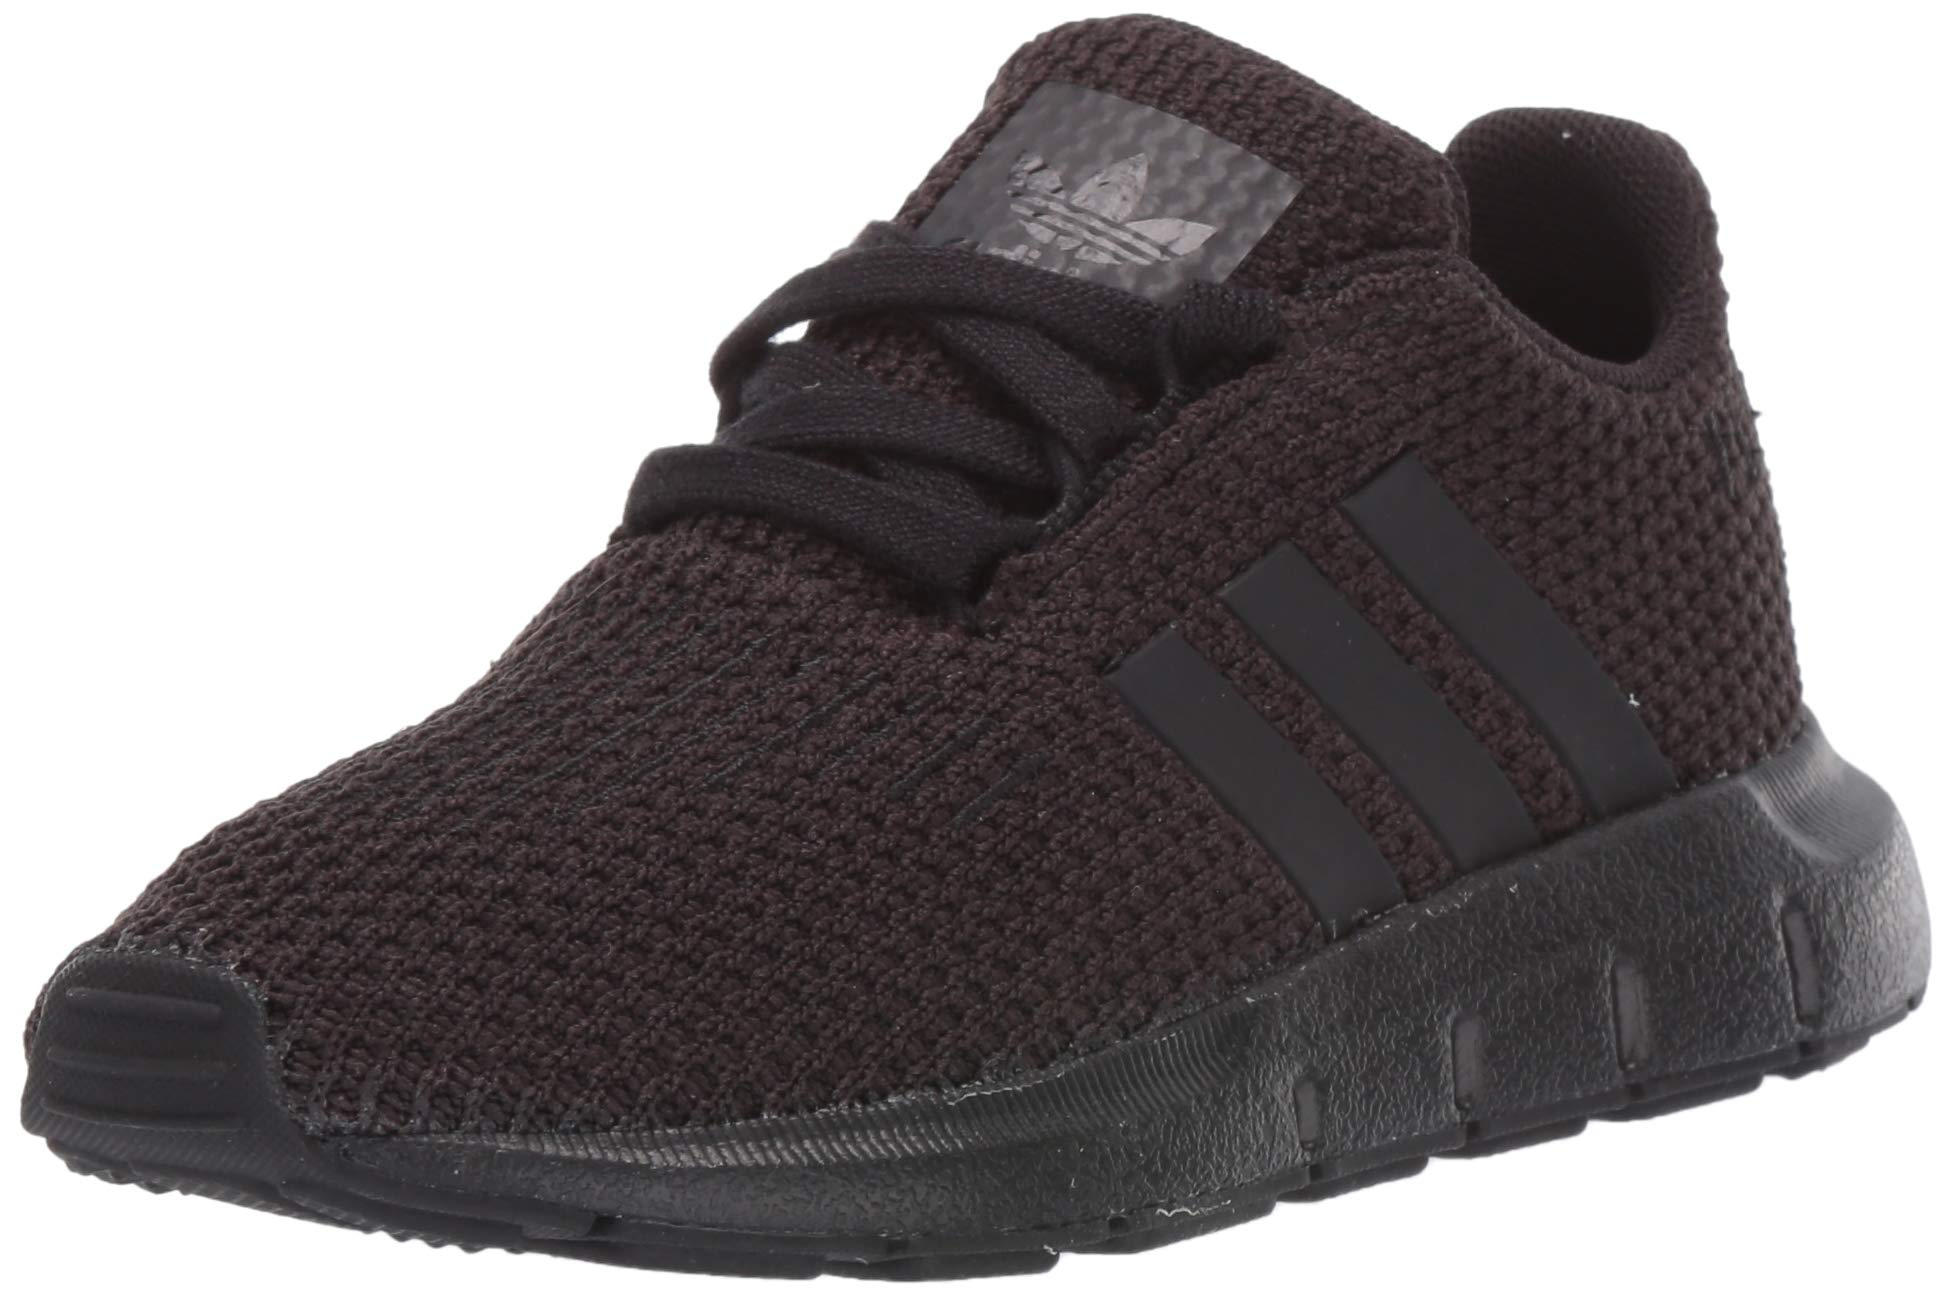 adidas Originals Baby Swift Running Shoe, Black, 8.5K M US Toddler by adidas Originals